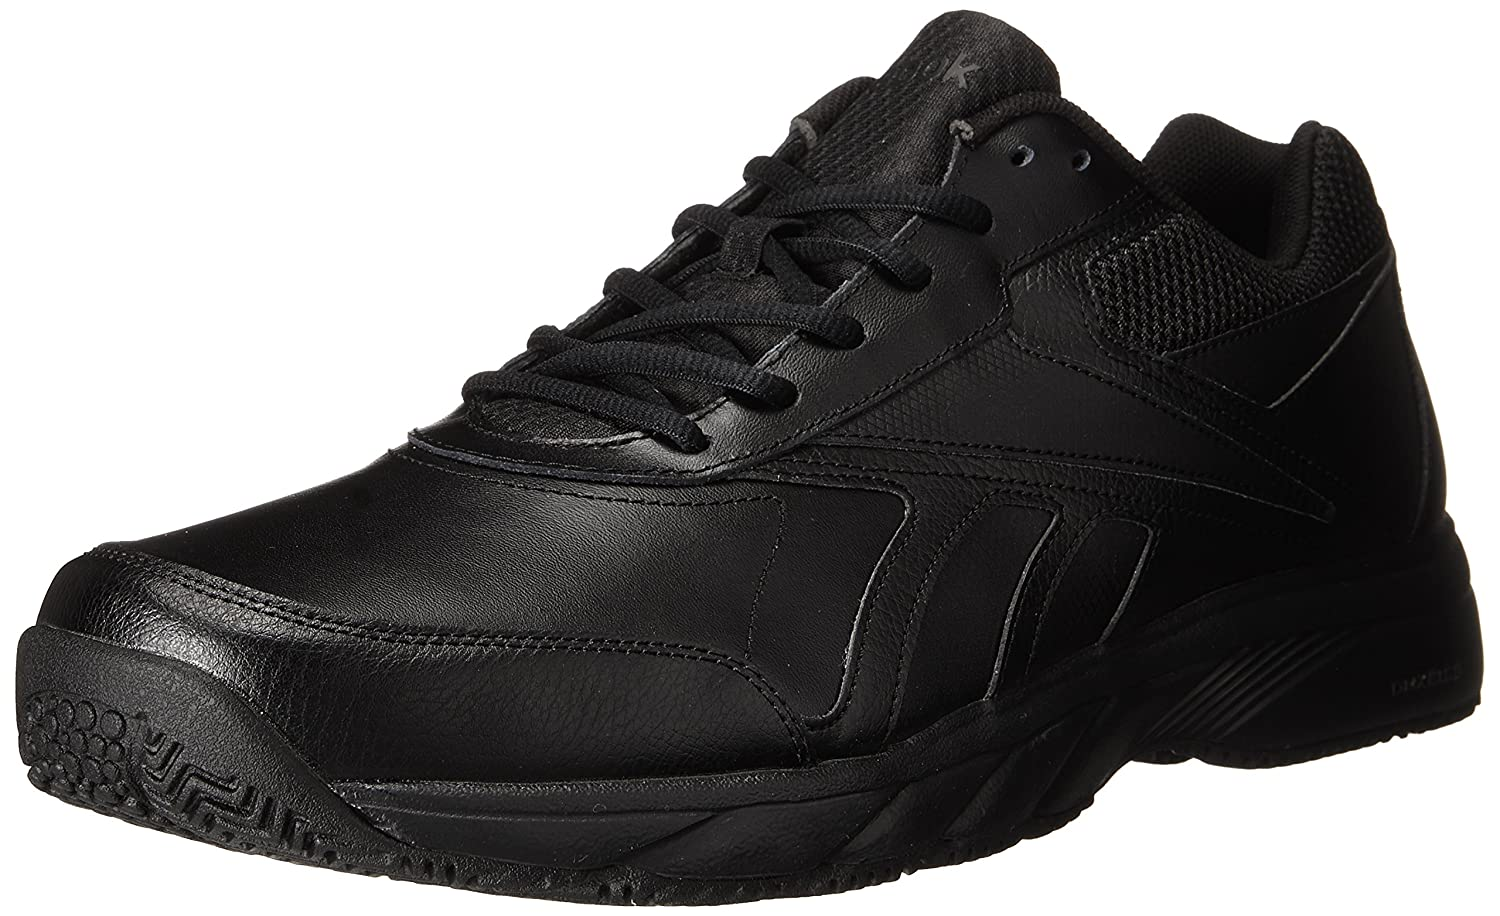 Reebok Men's Work N Cushion 2.0 Walking Shoe Reebok Footwear Work N Cushion 2.0-M